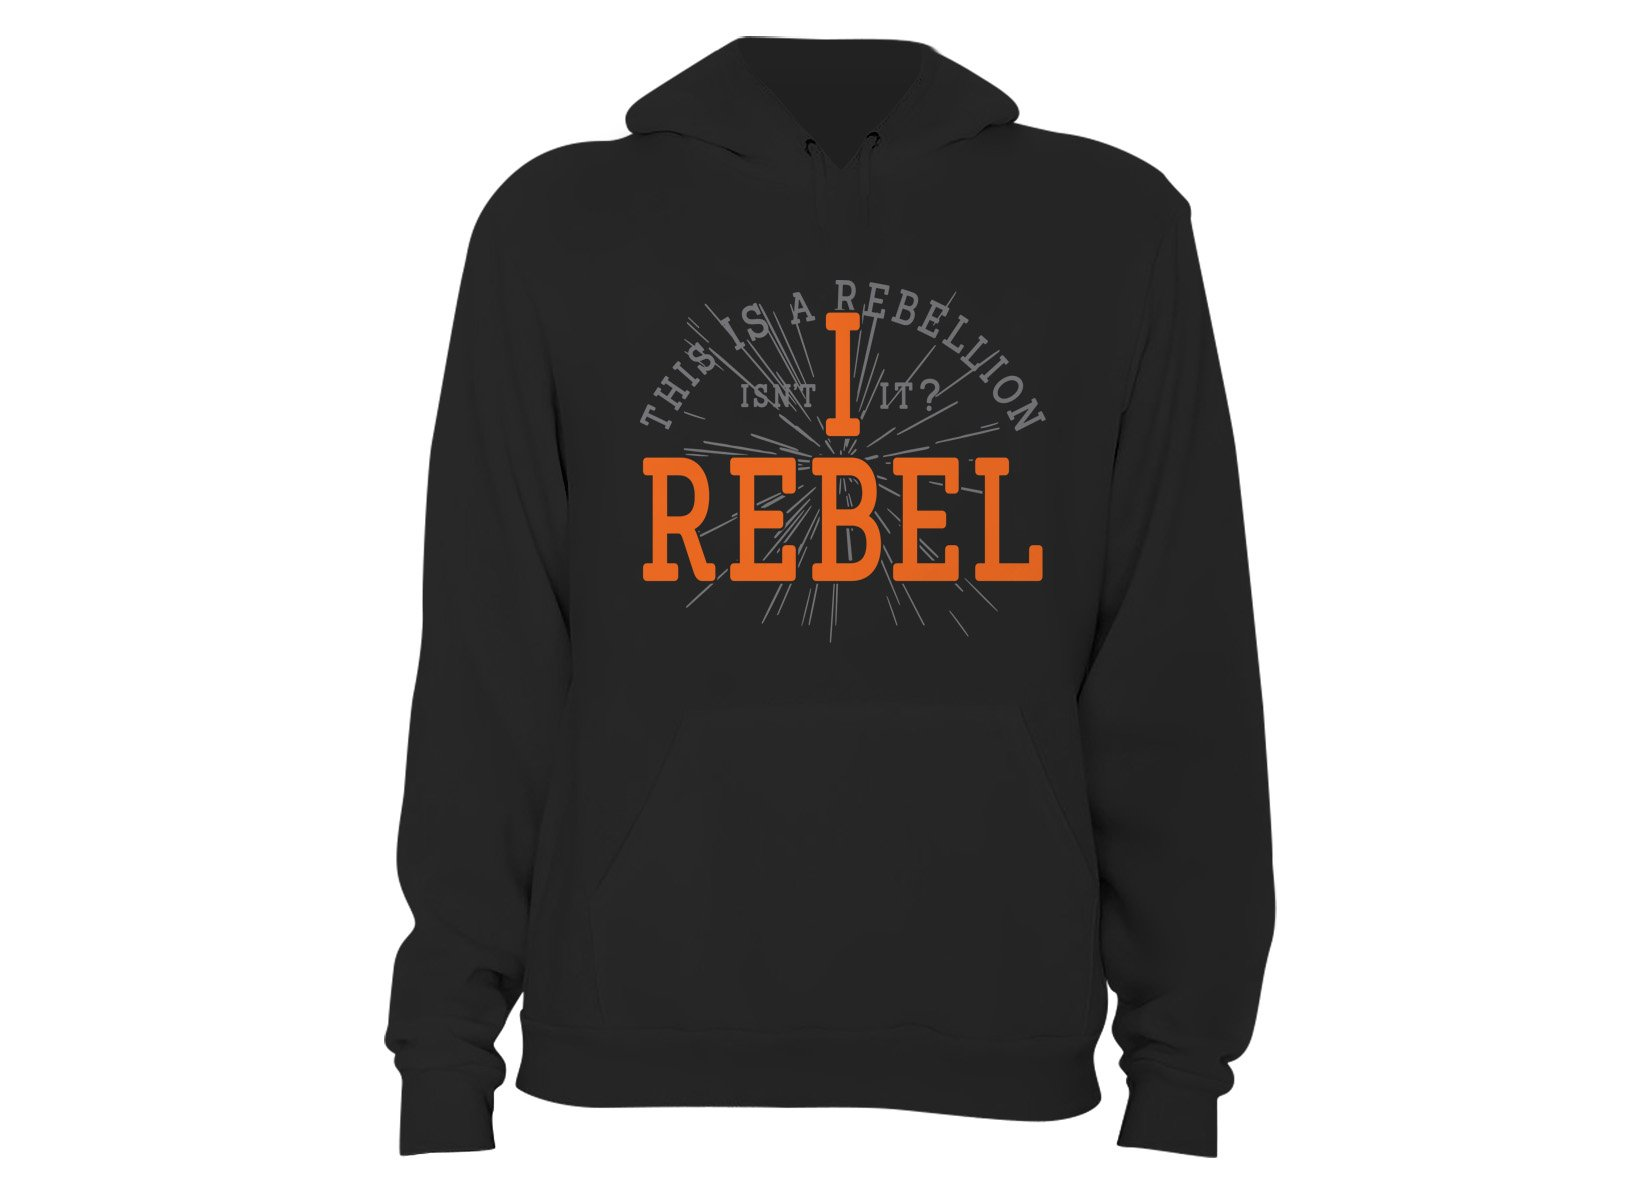 I Rebel on Hoodie